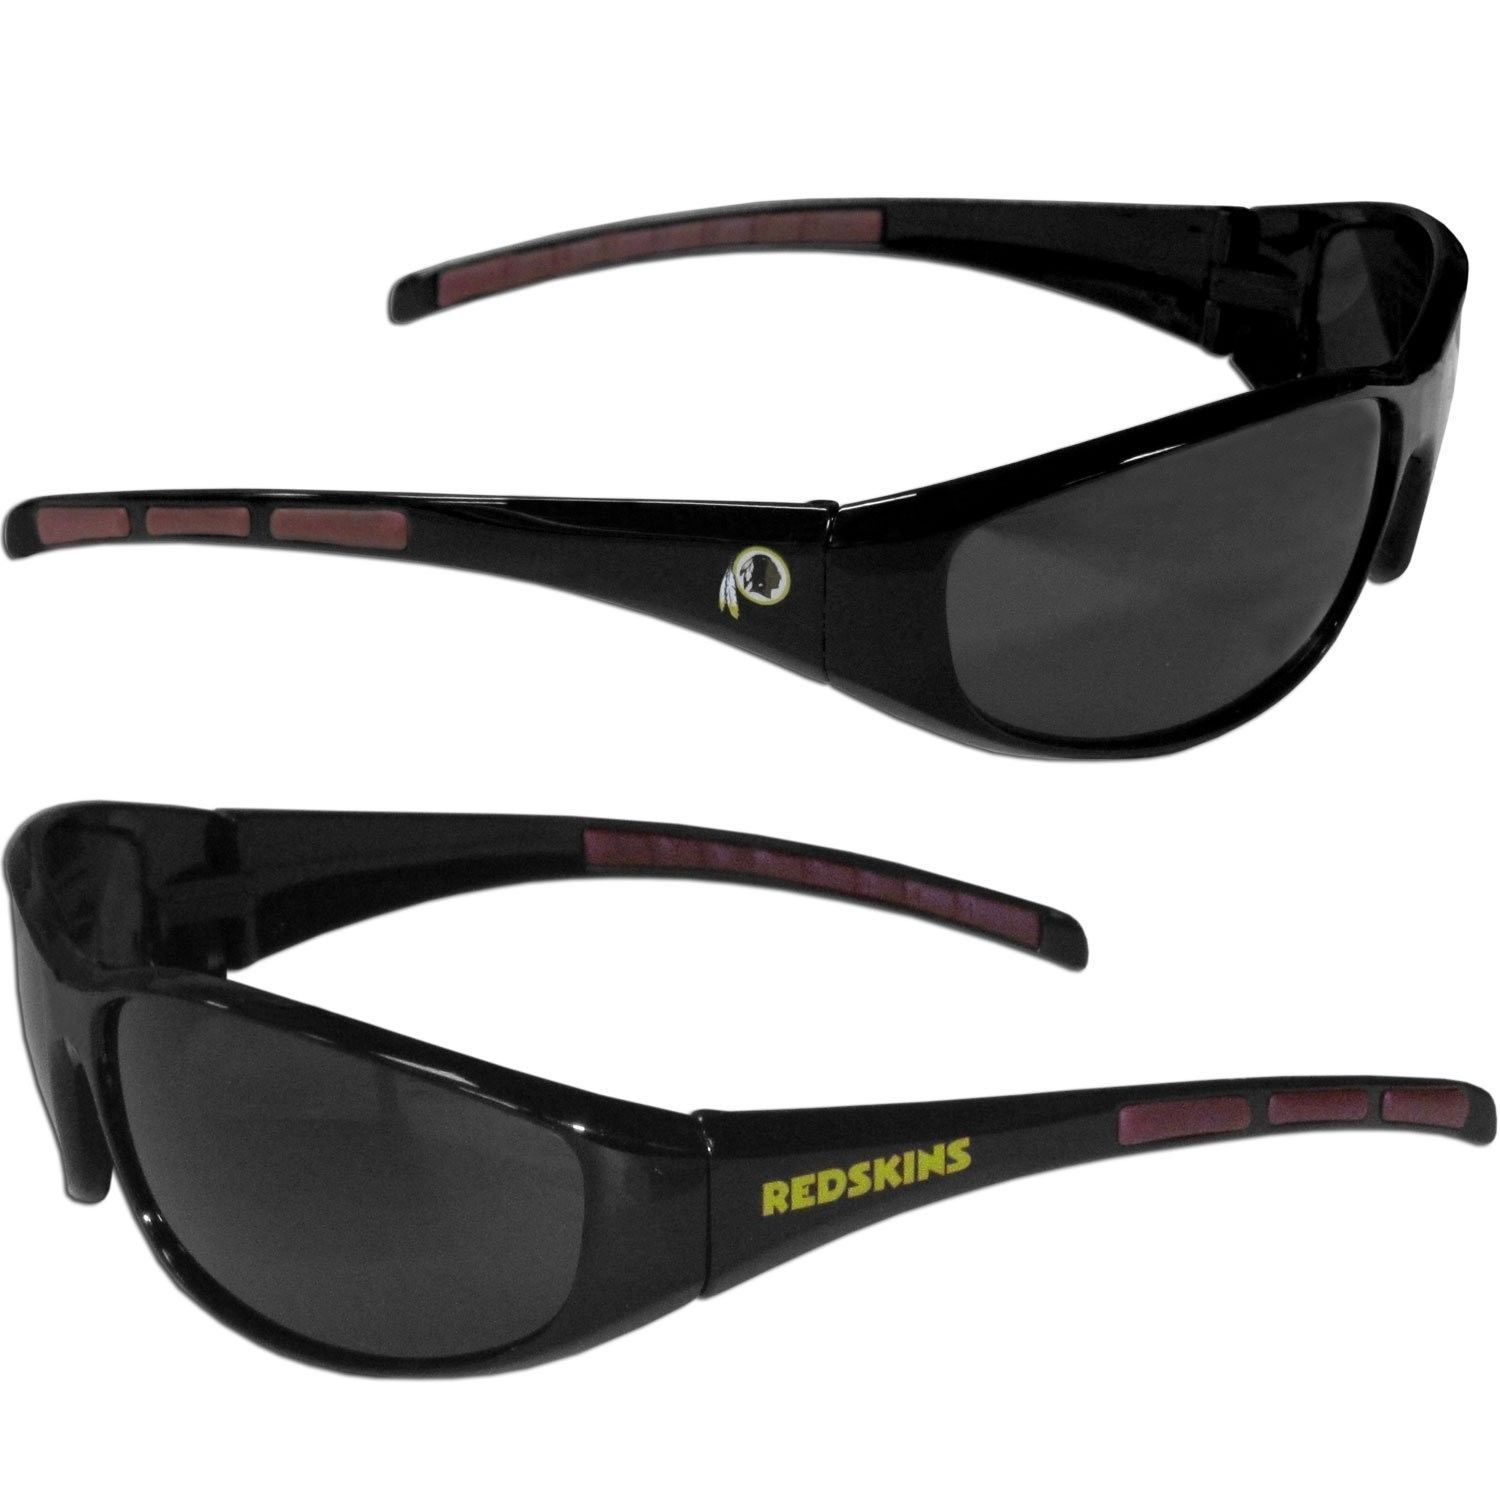 WASHINGTON REDSKINS UV 400 WRAP SUNGLASSES TEAM LOGO NFL FOOTBALL #1